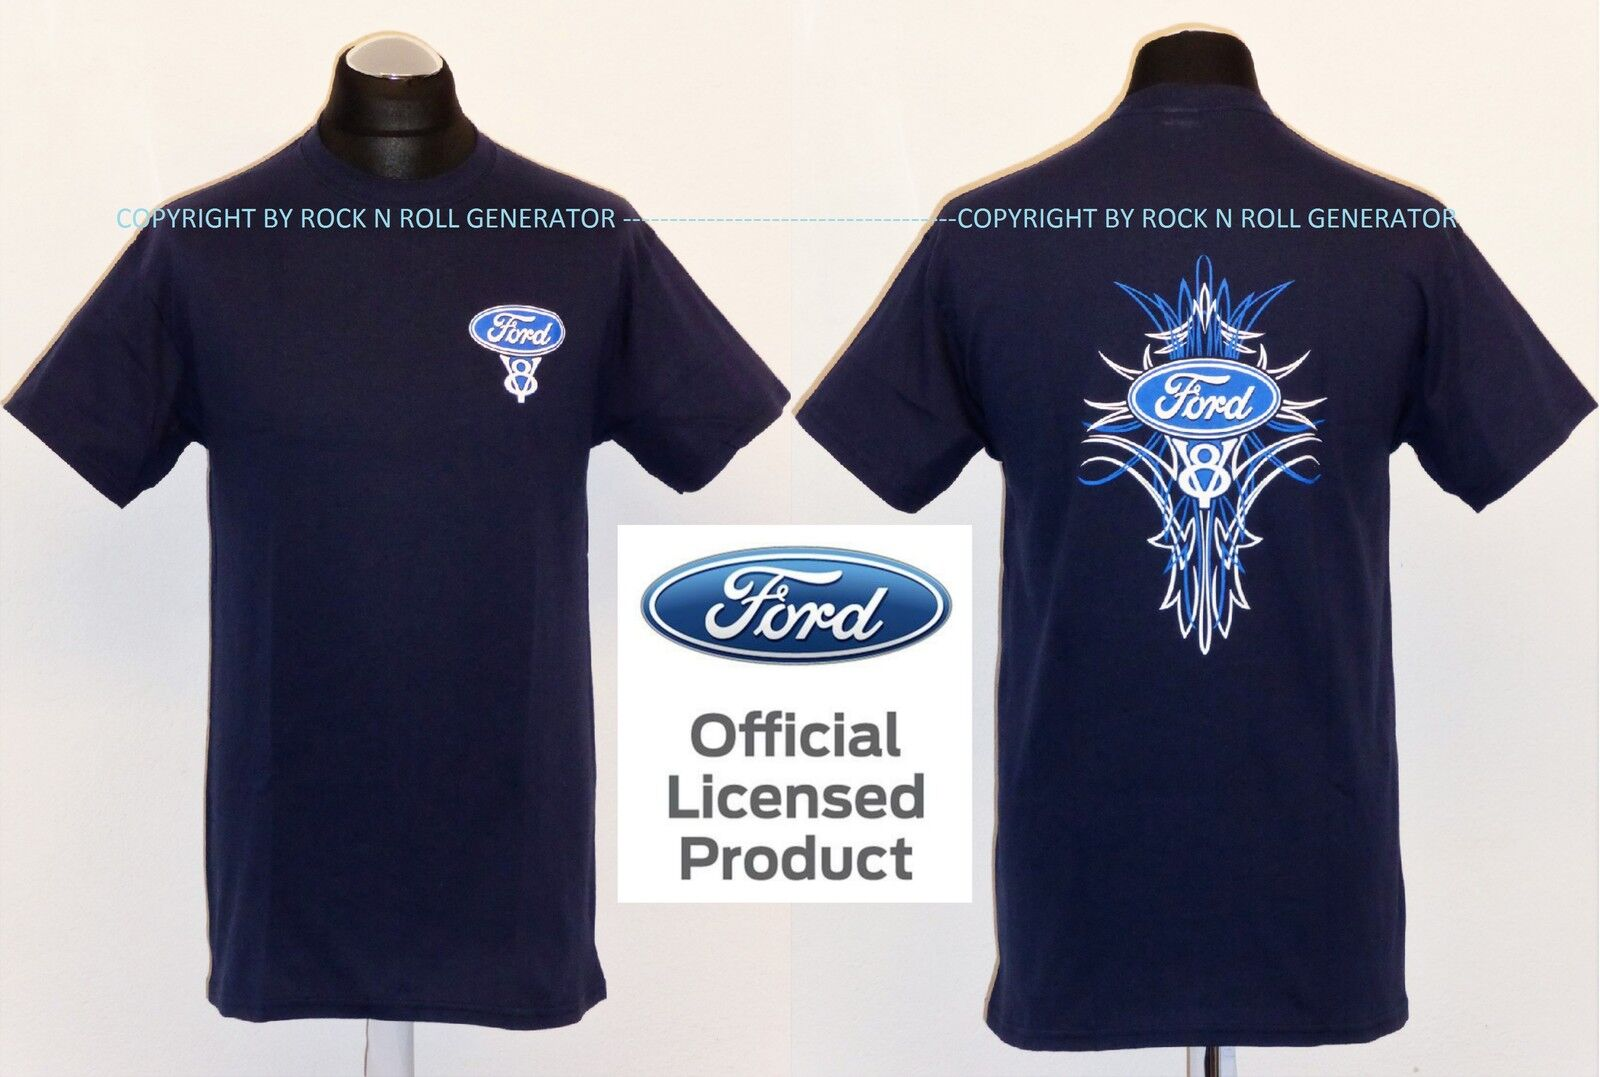 FORD V8 T-SHIRT - Pinstripe Licensed Product  Hot Rod Mustang F150 USA blue navy